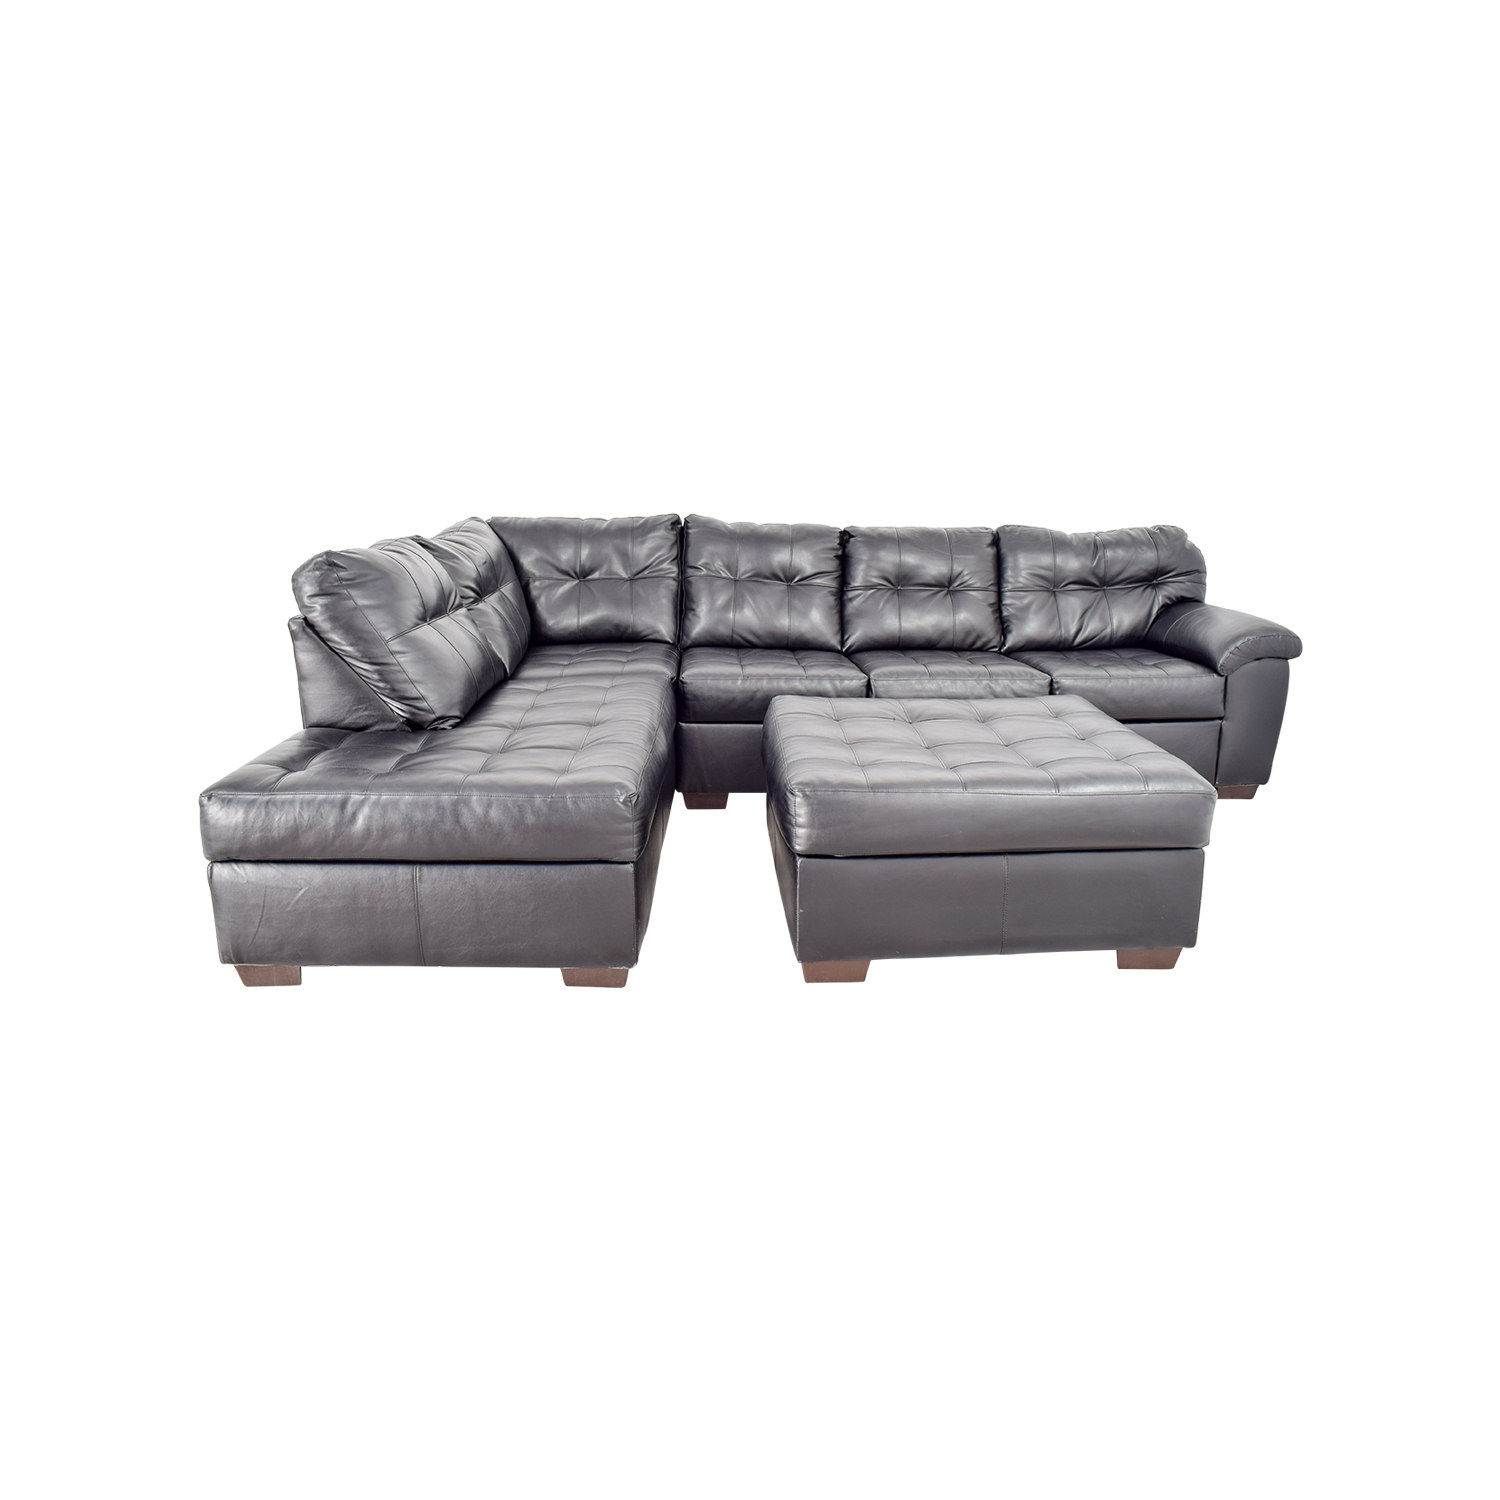 81% OFF - Black Leather Tufted Sectional Sofa and Ottoman / Sofas